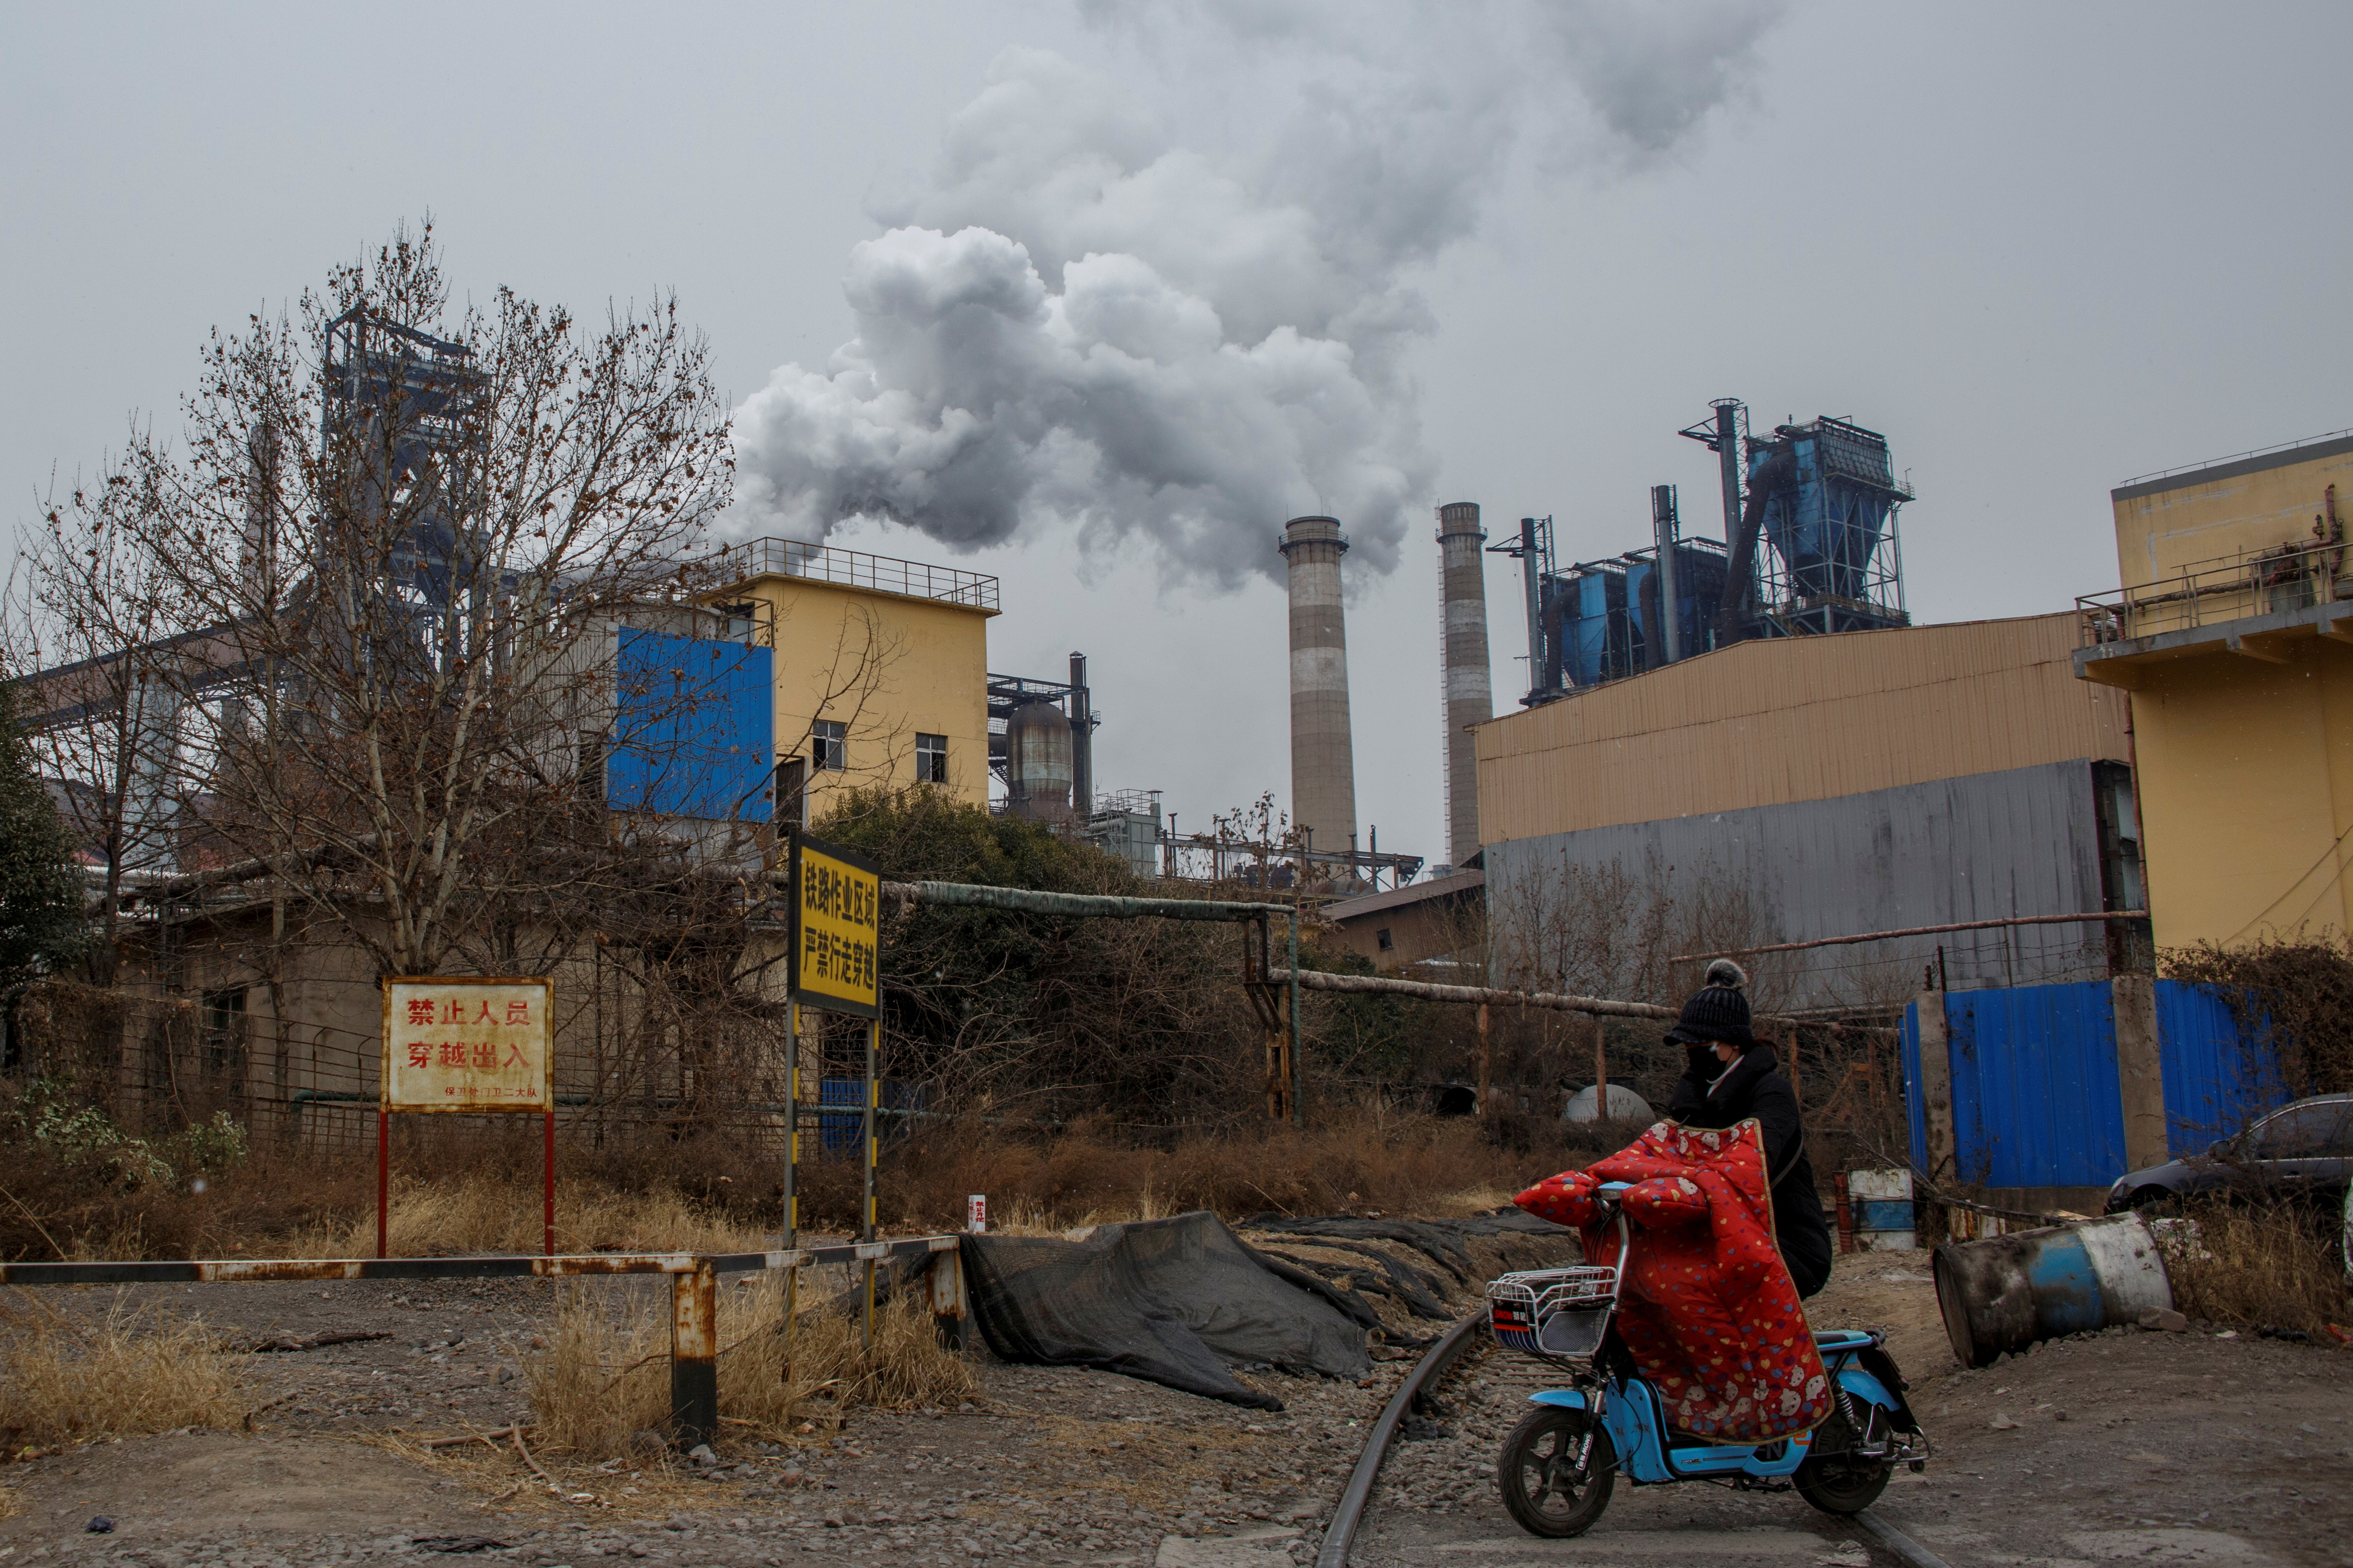 A woman rides a scooter past a steel plant in Anyang, Henan province, China, February 18, 2019. REUTERS/Thomas Peter/Files